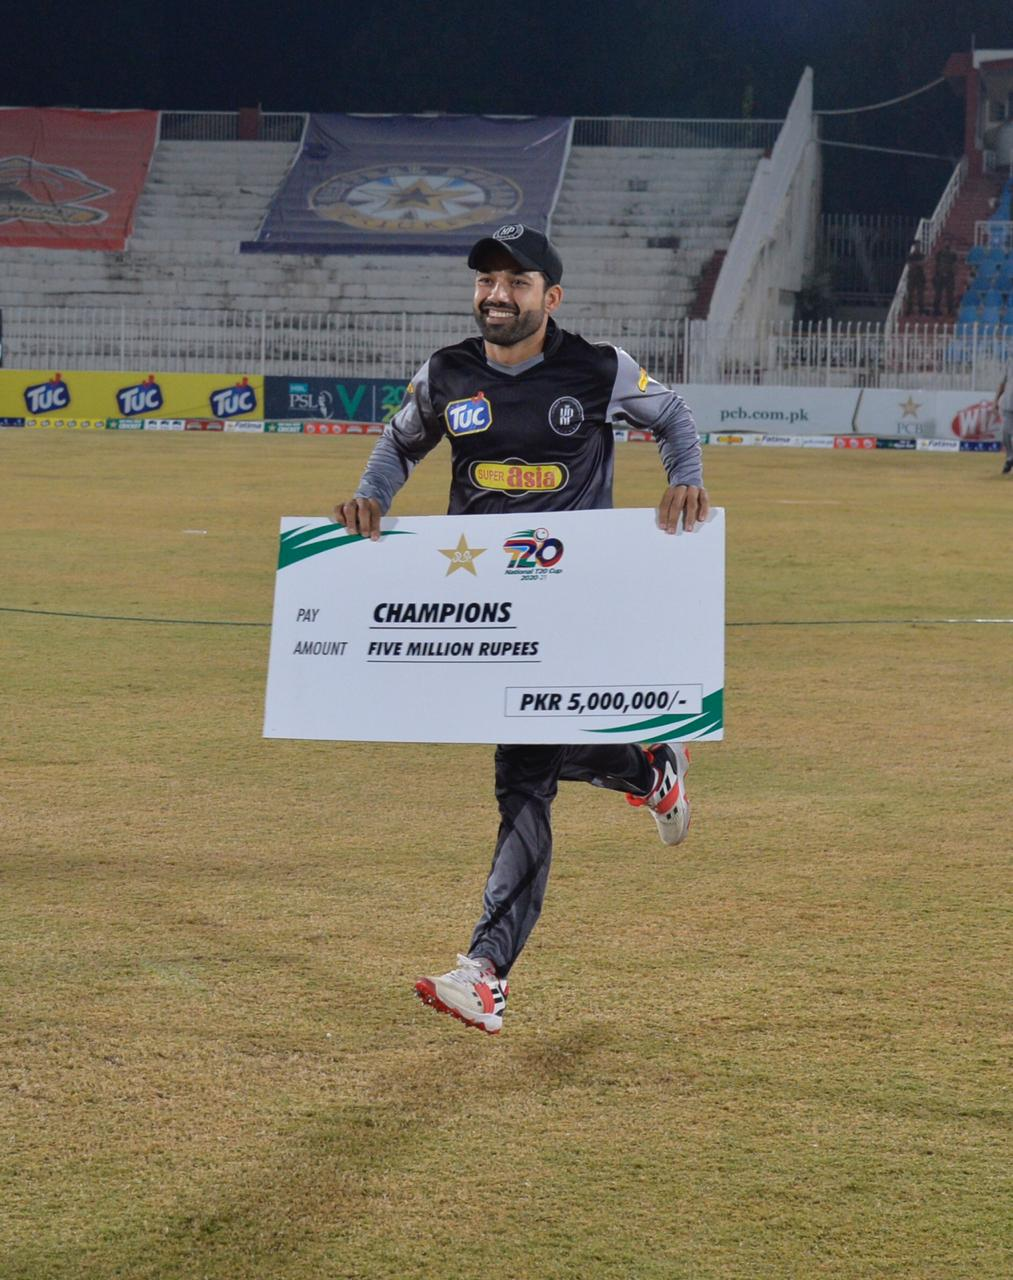 Rizwan blooms in commanding KPK, Is this the end to Sarfaraz's international career?